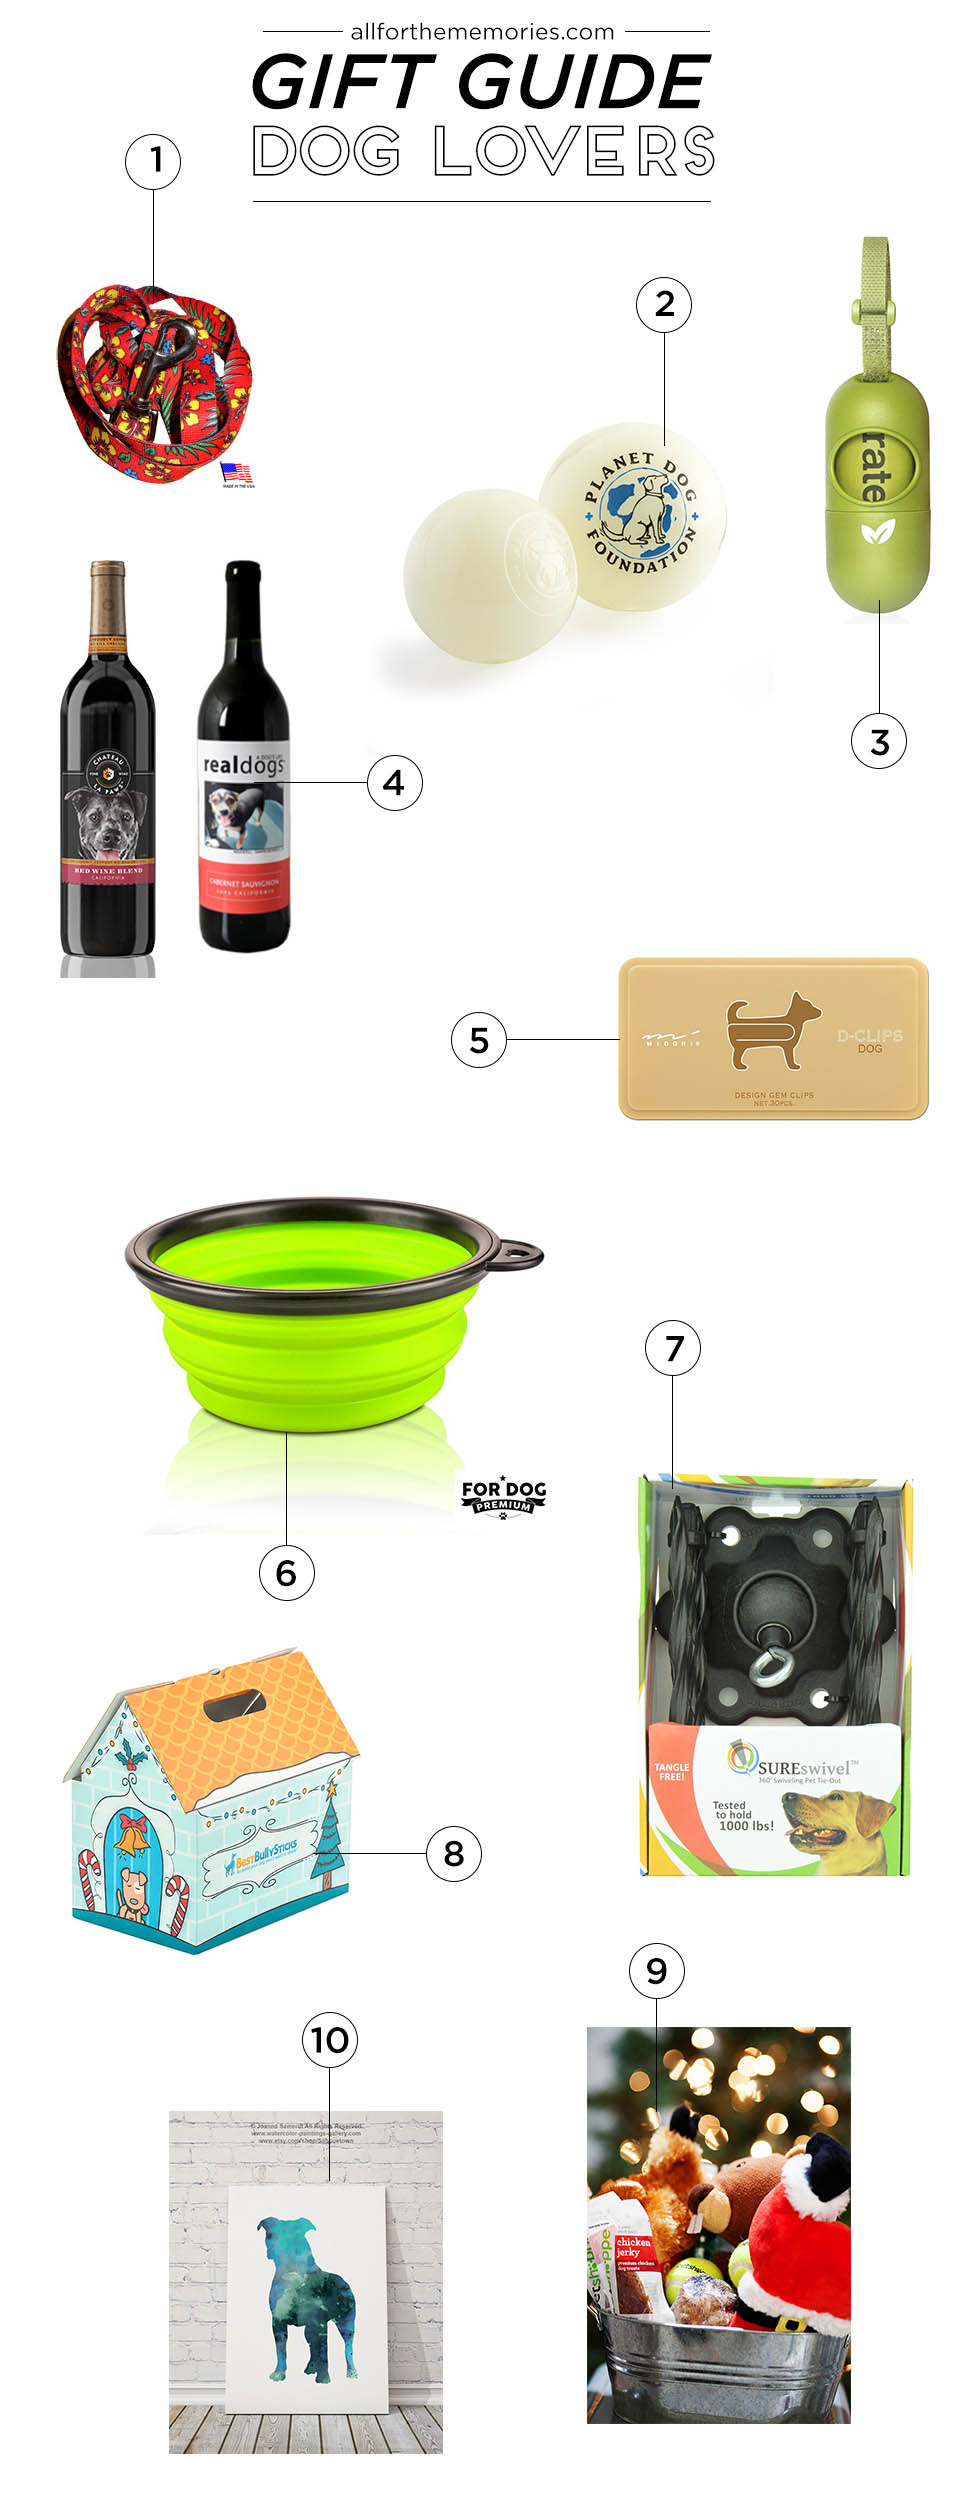 Gift Guide for Dogs and Dog Lovers